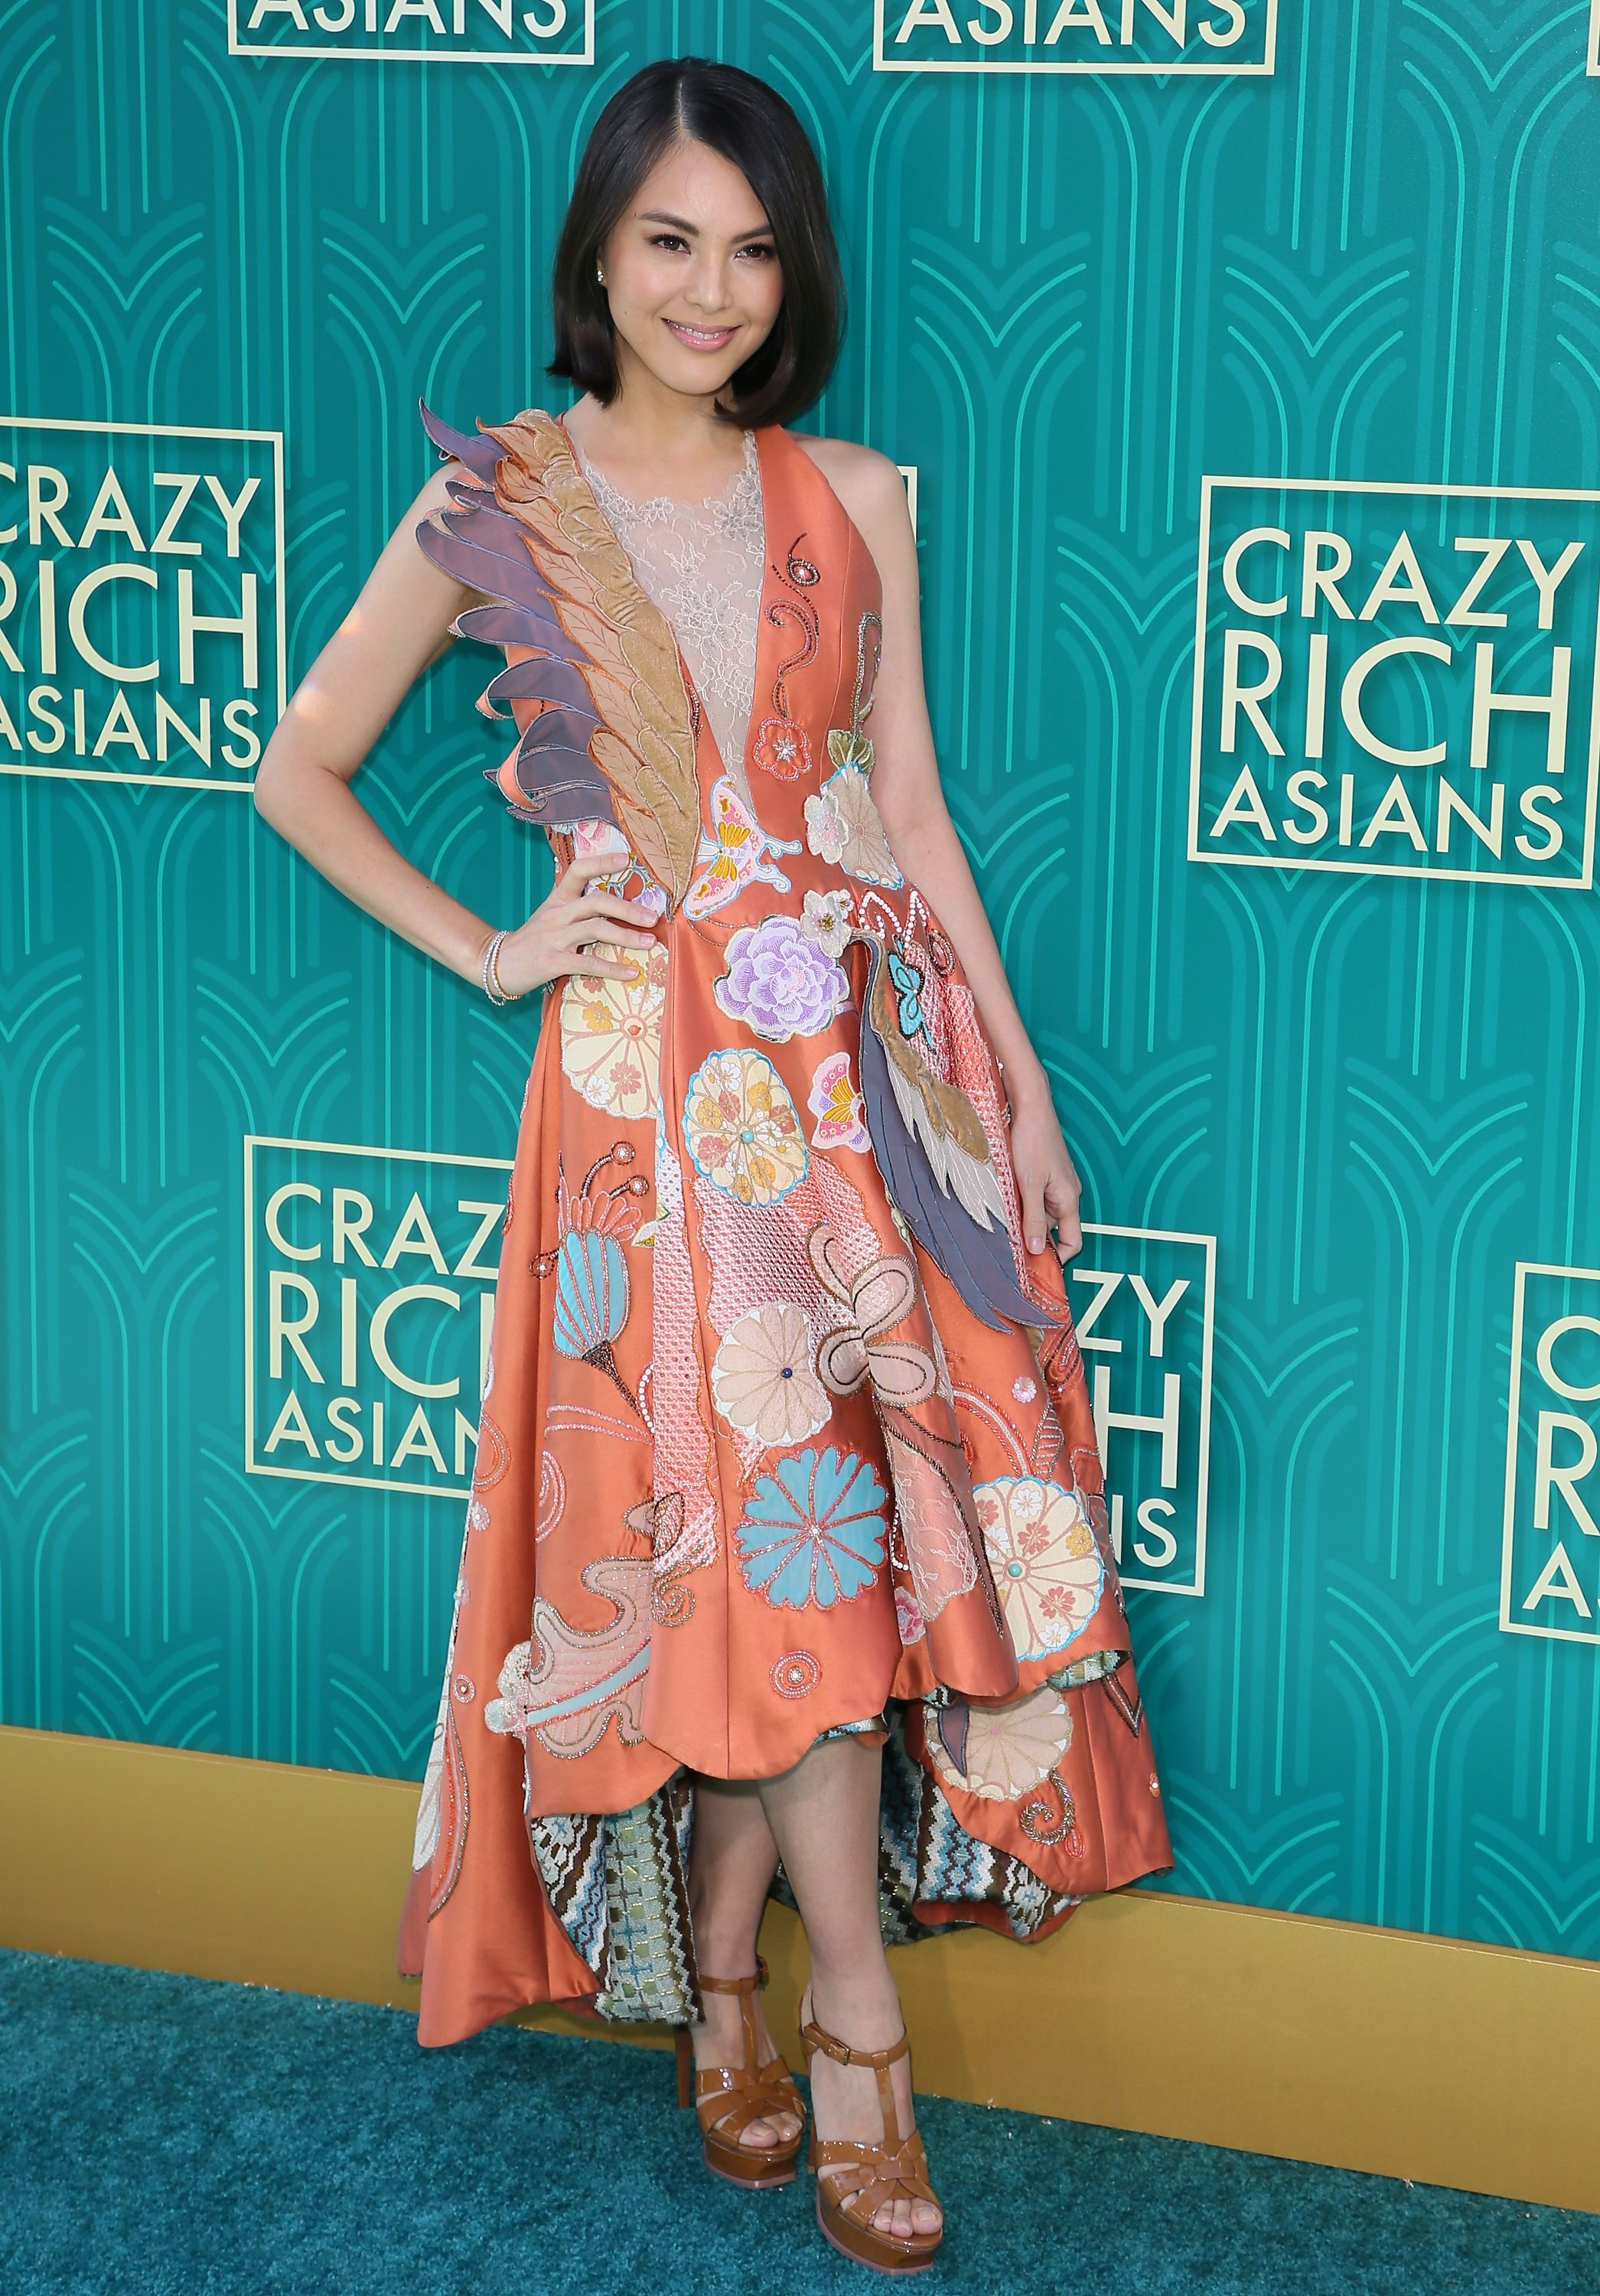 US-ENTERTAINMENT-FILM-PREMIERE-CRAZYRICHASIANS